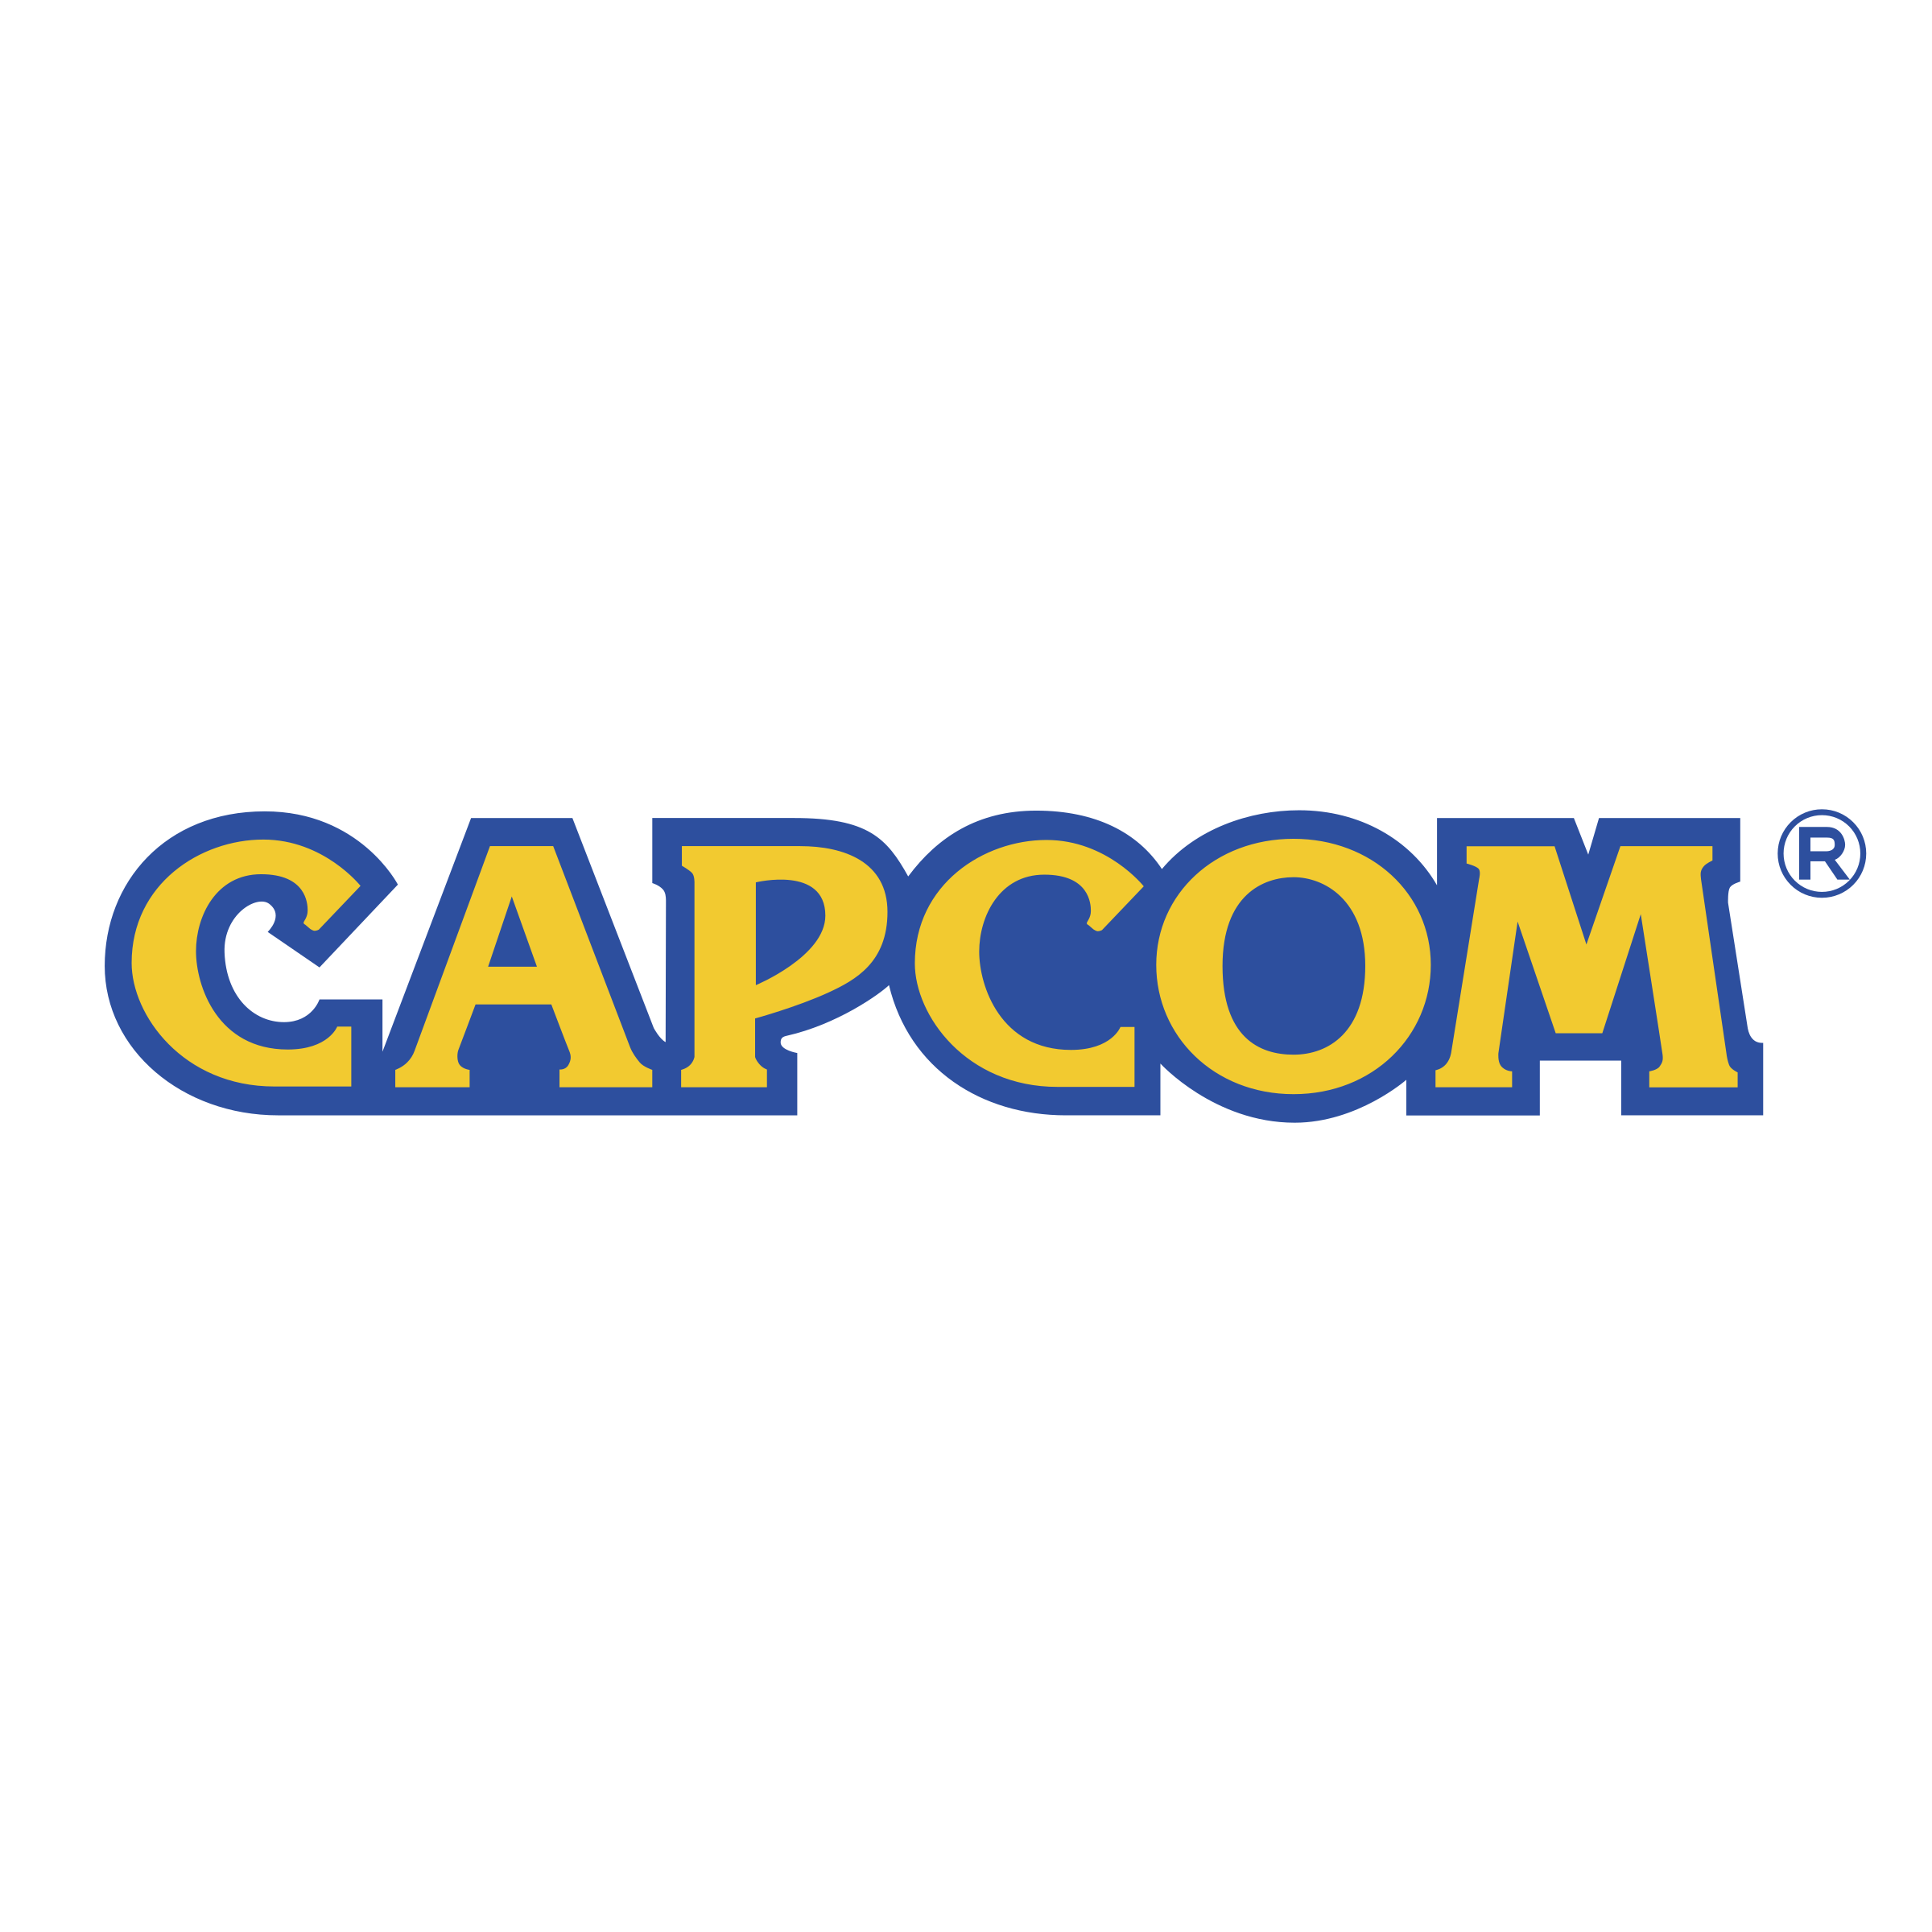 Capcom logo download free clipart with a transparent.